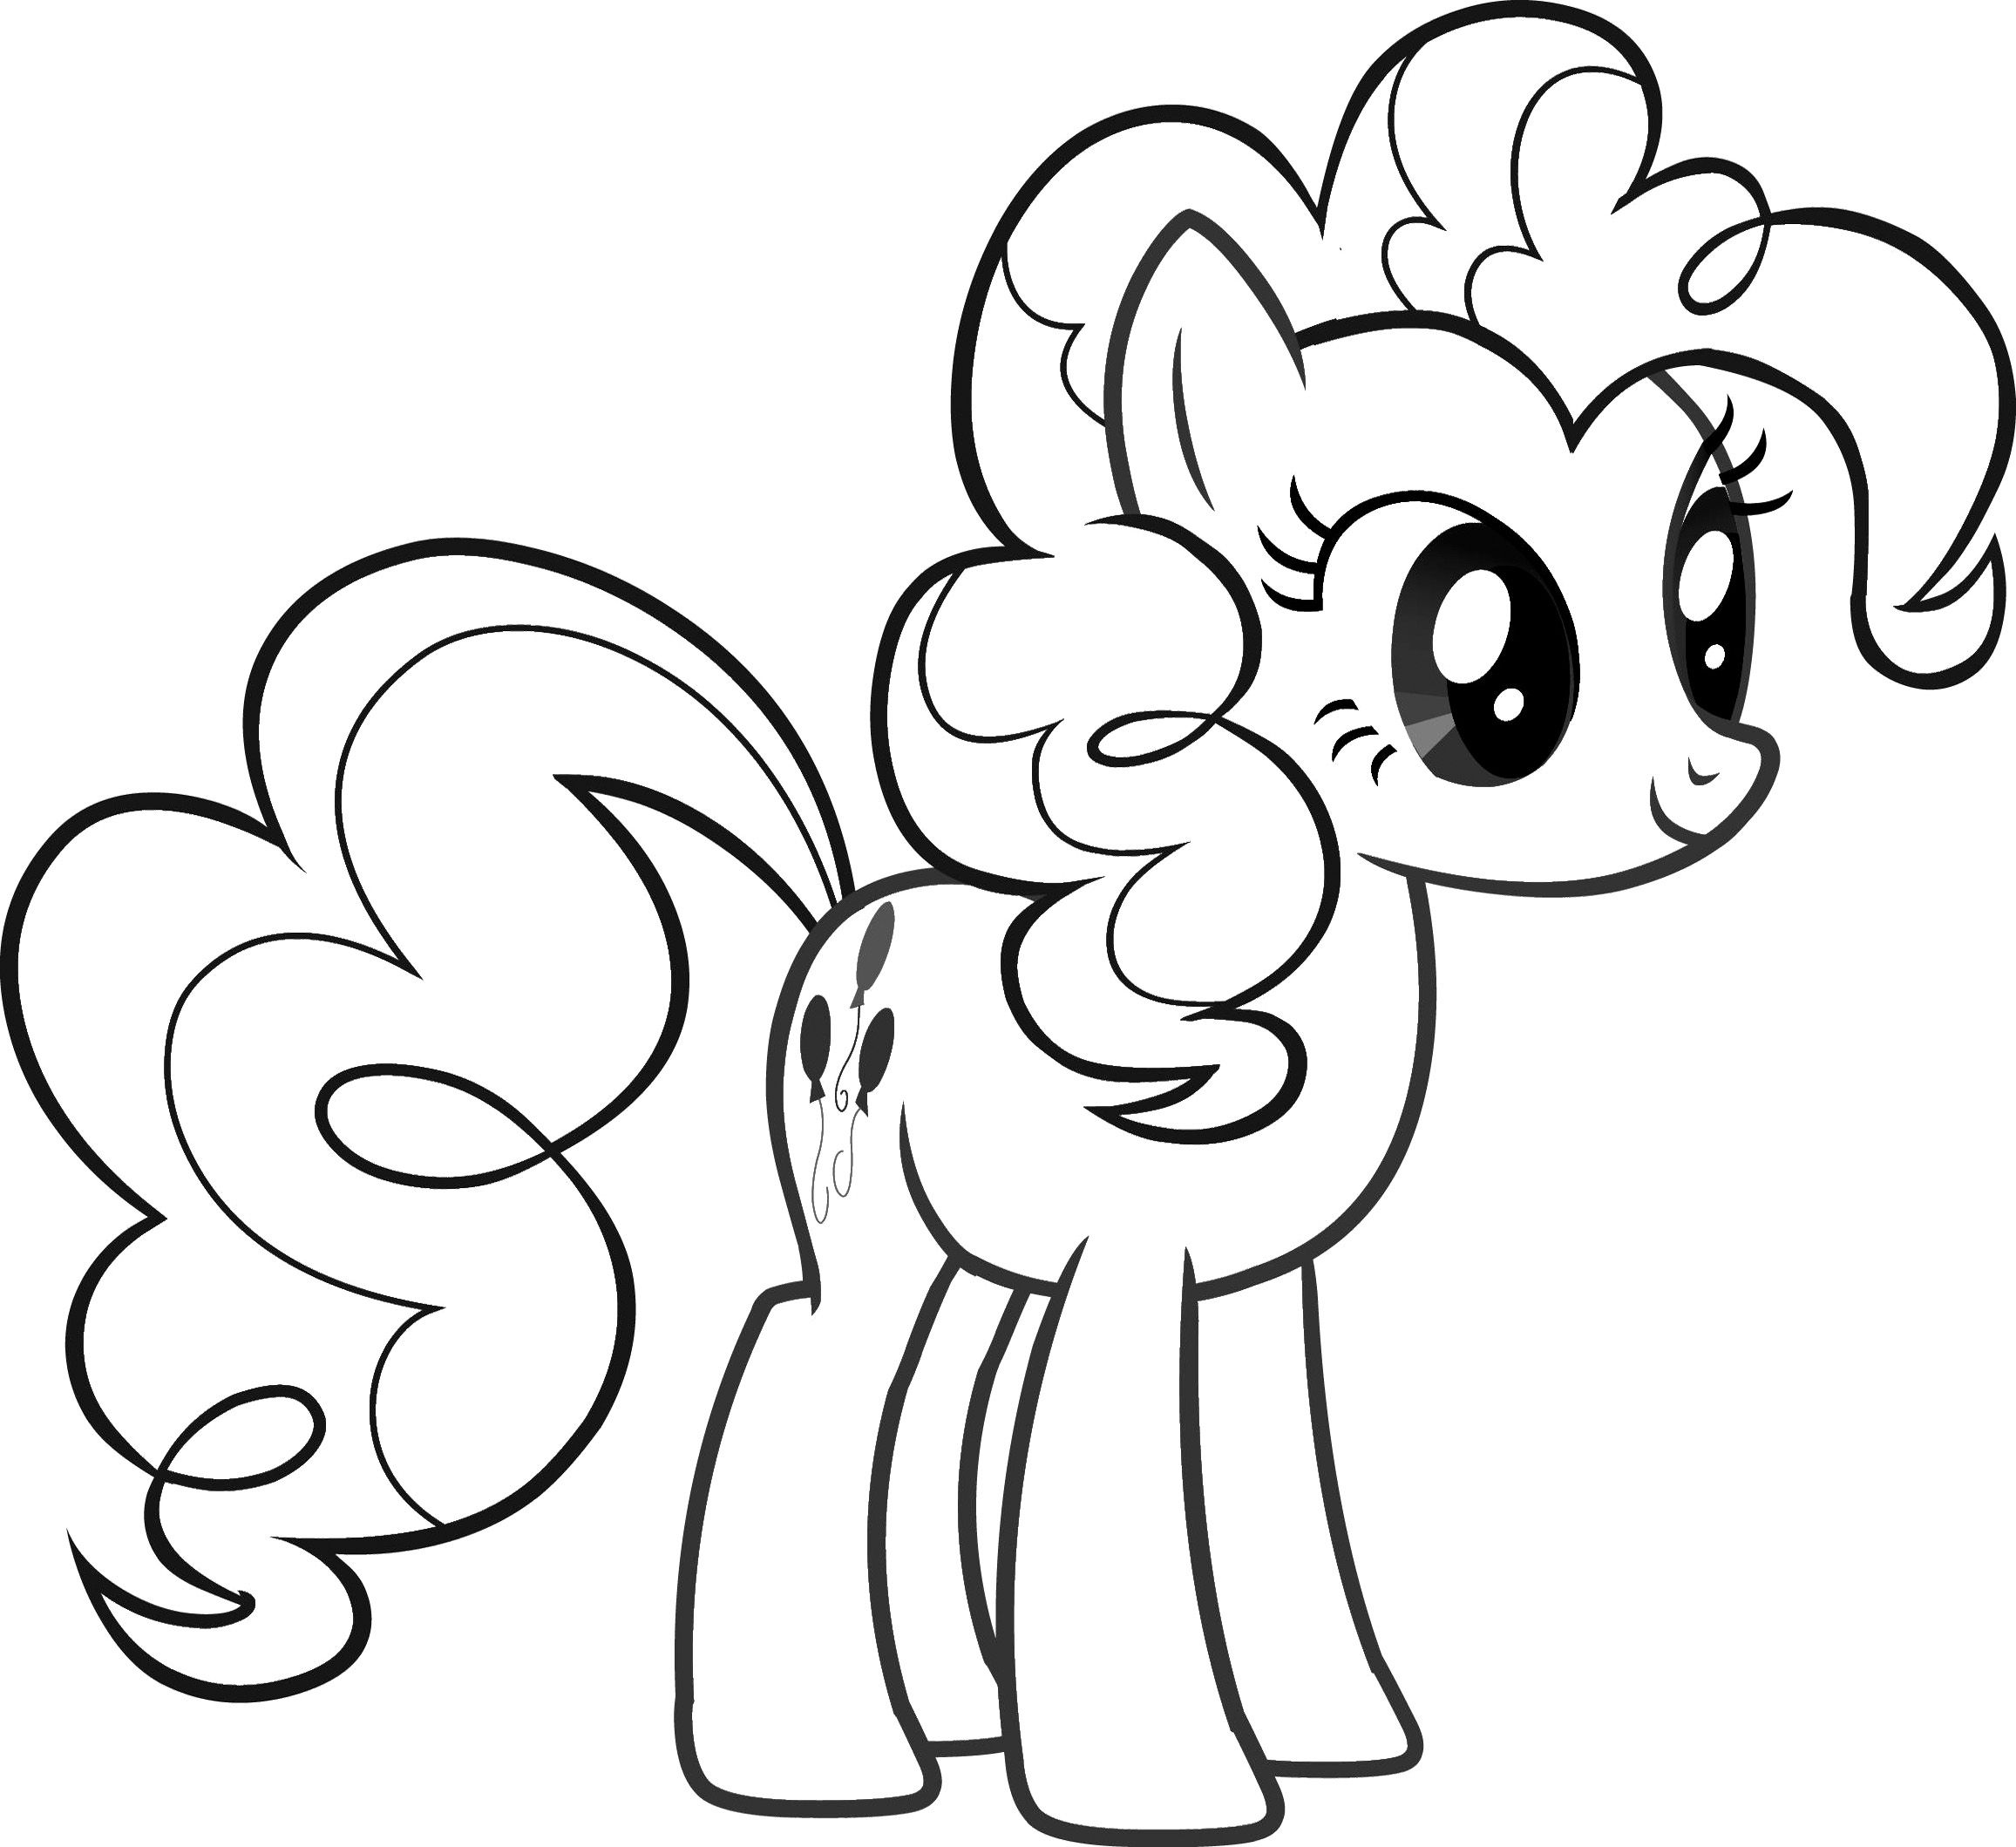 Pinkie Pie My Little Pony Coloring Pages My Little Pony Printable Pokemon Coloring Pages My Little Pony Coloring